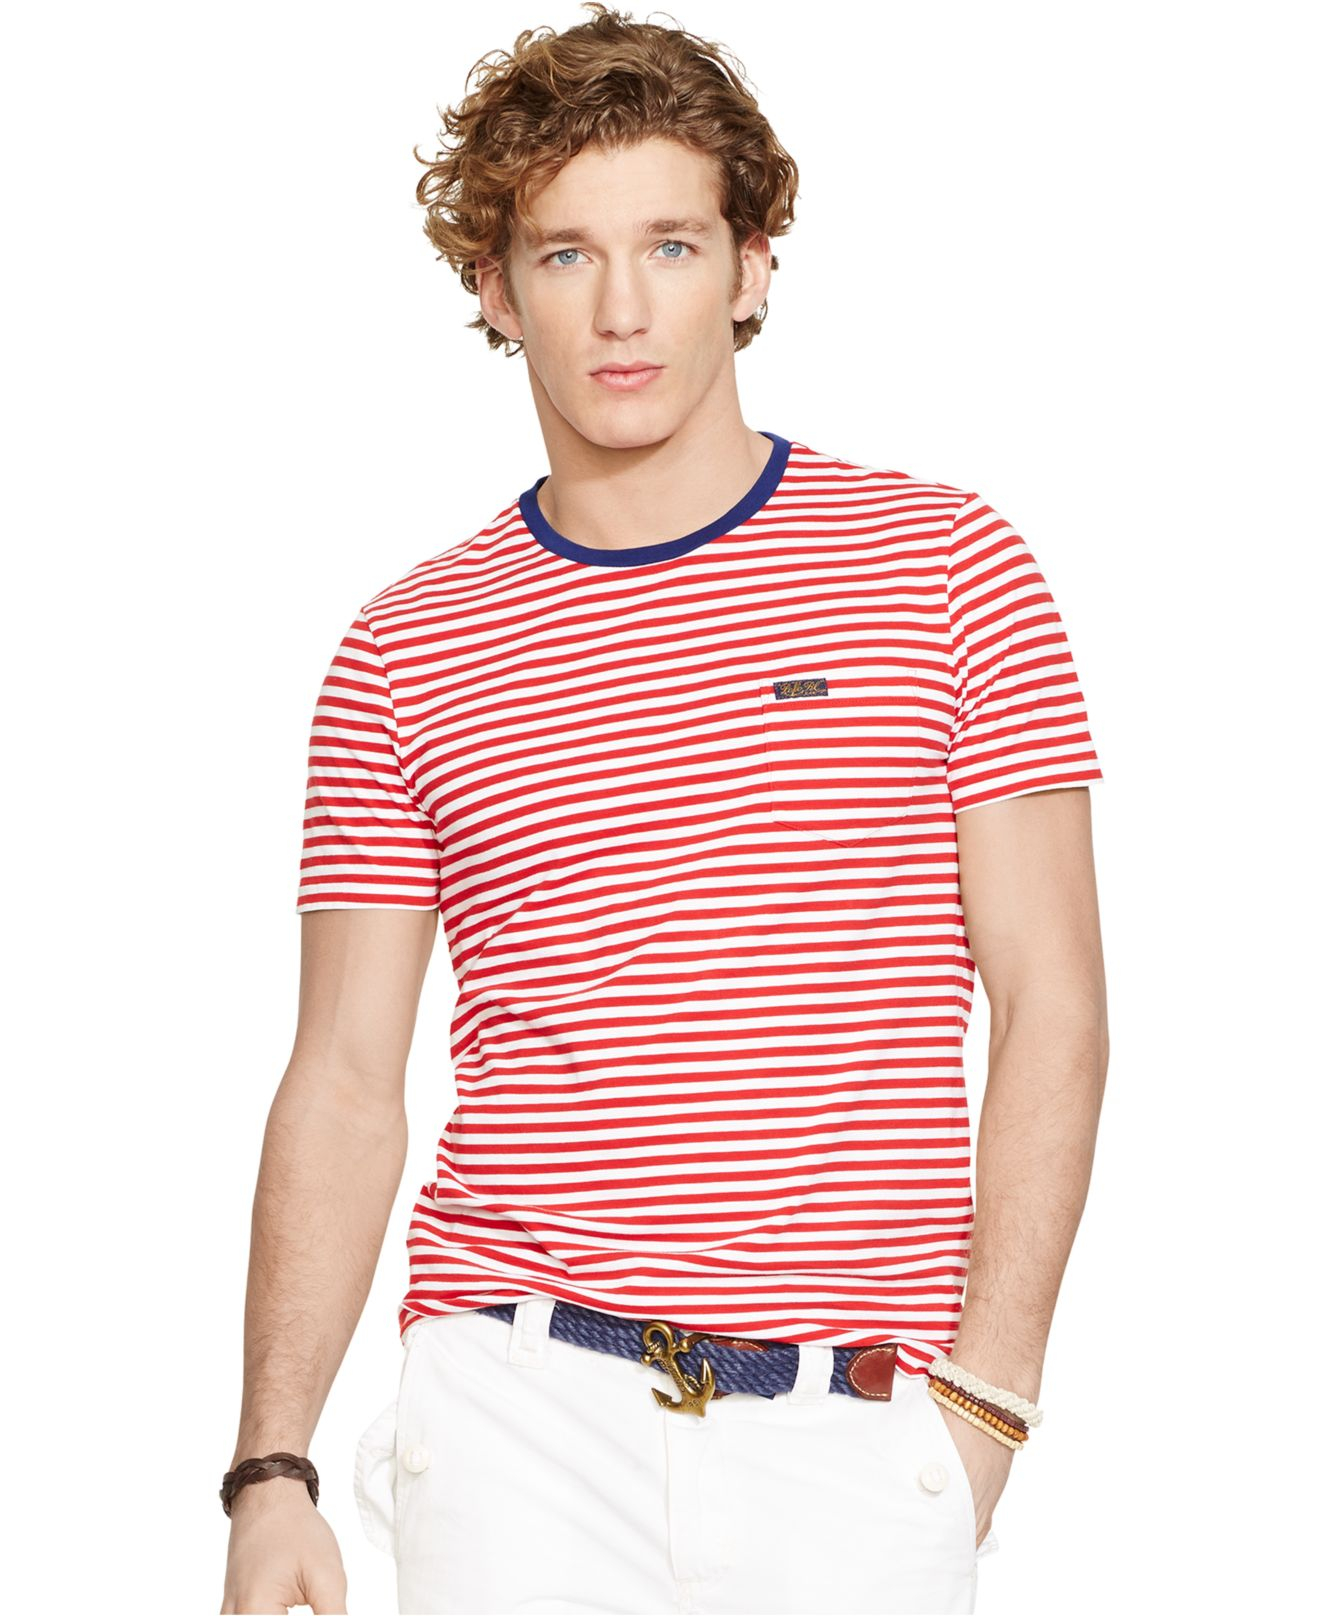 Polo ralph lauren striped pocket t shirt in red for men lyst for Polo t shirts with pocket online